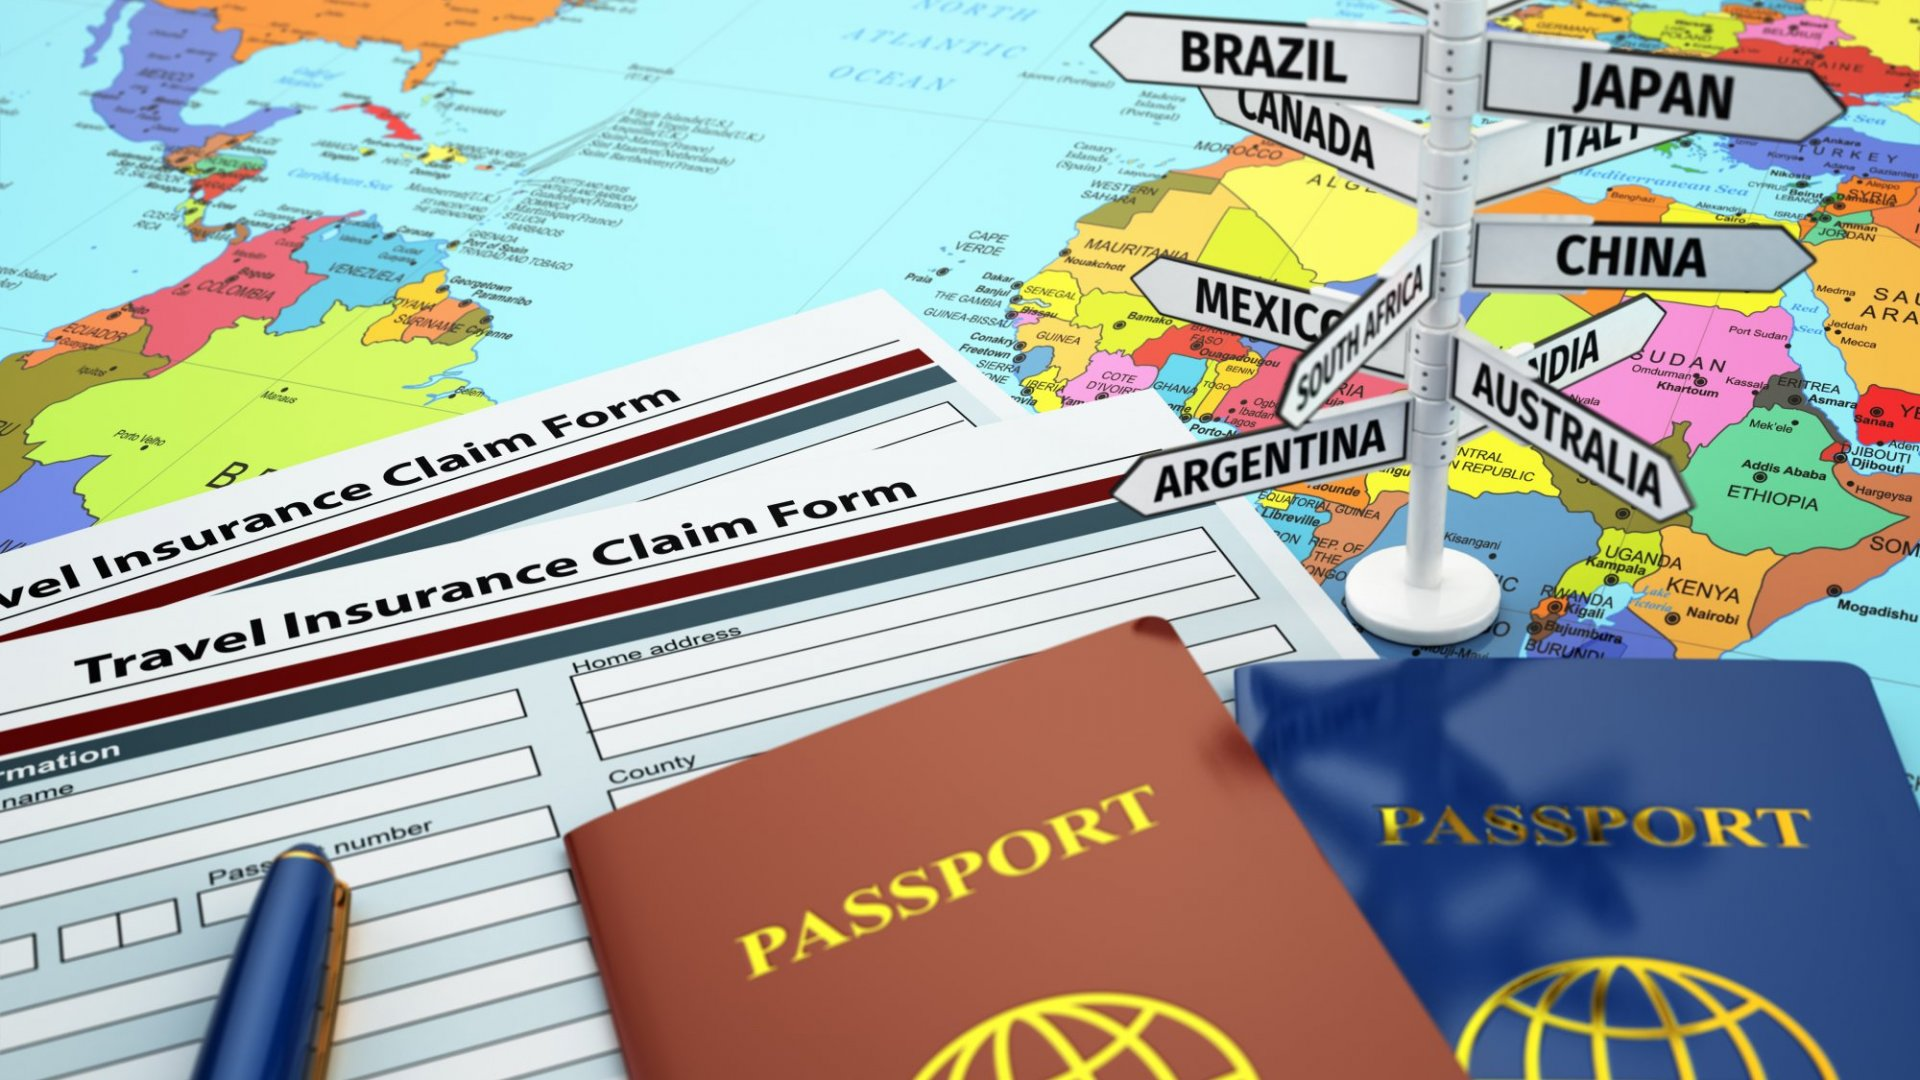 5 Ways to Stay Safe From Terrorism and Other Threats When Traveling Overseas